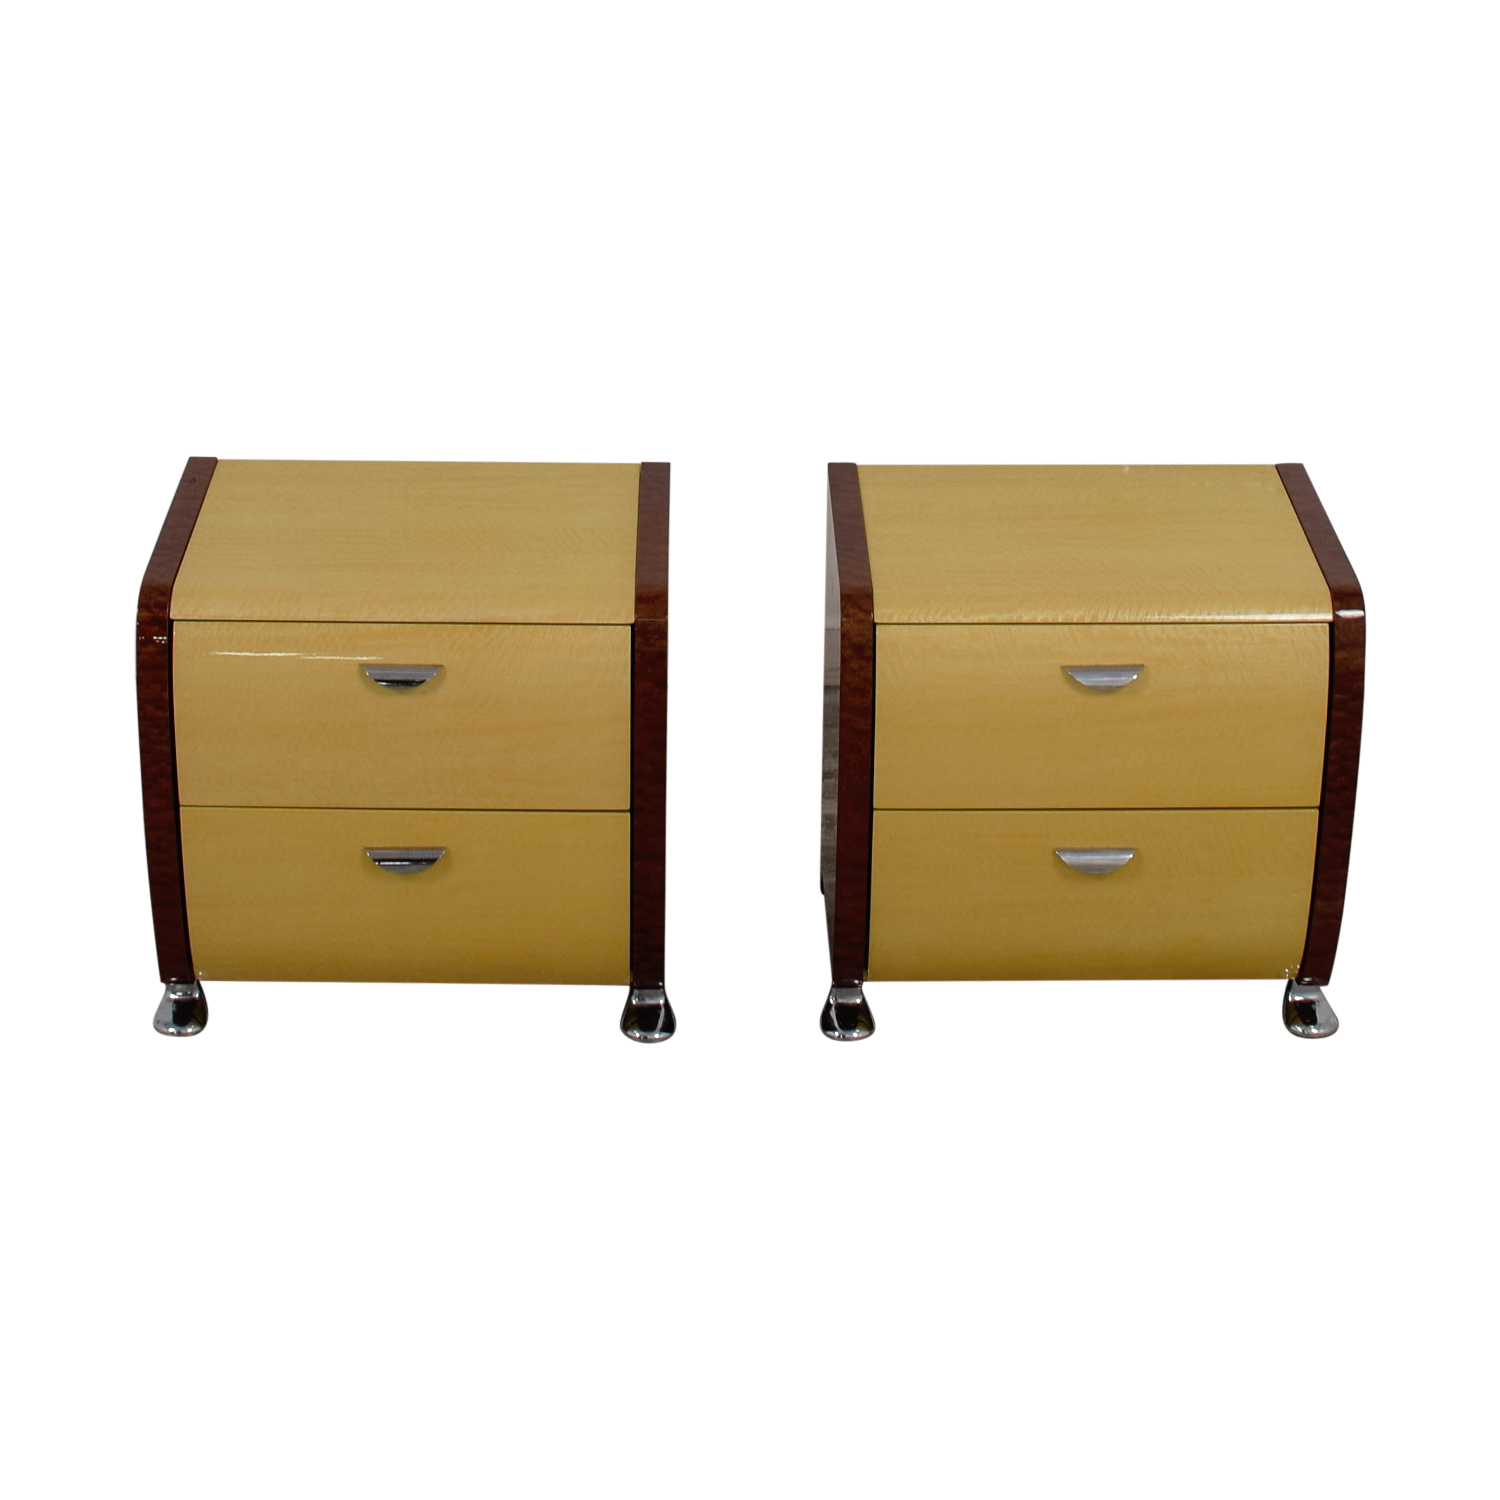 Wood and Beige Two-Drawer End Tables dimensions